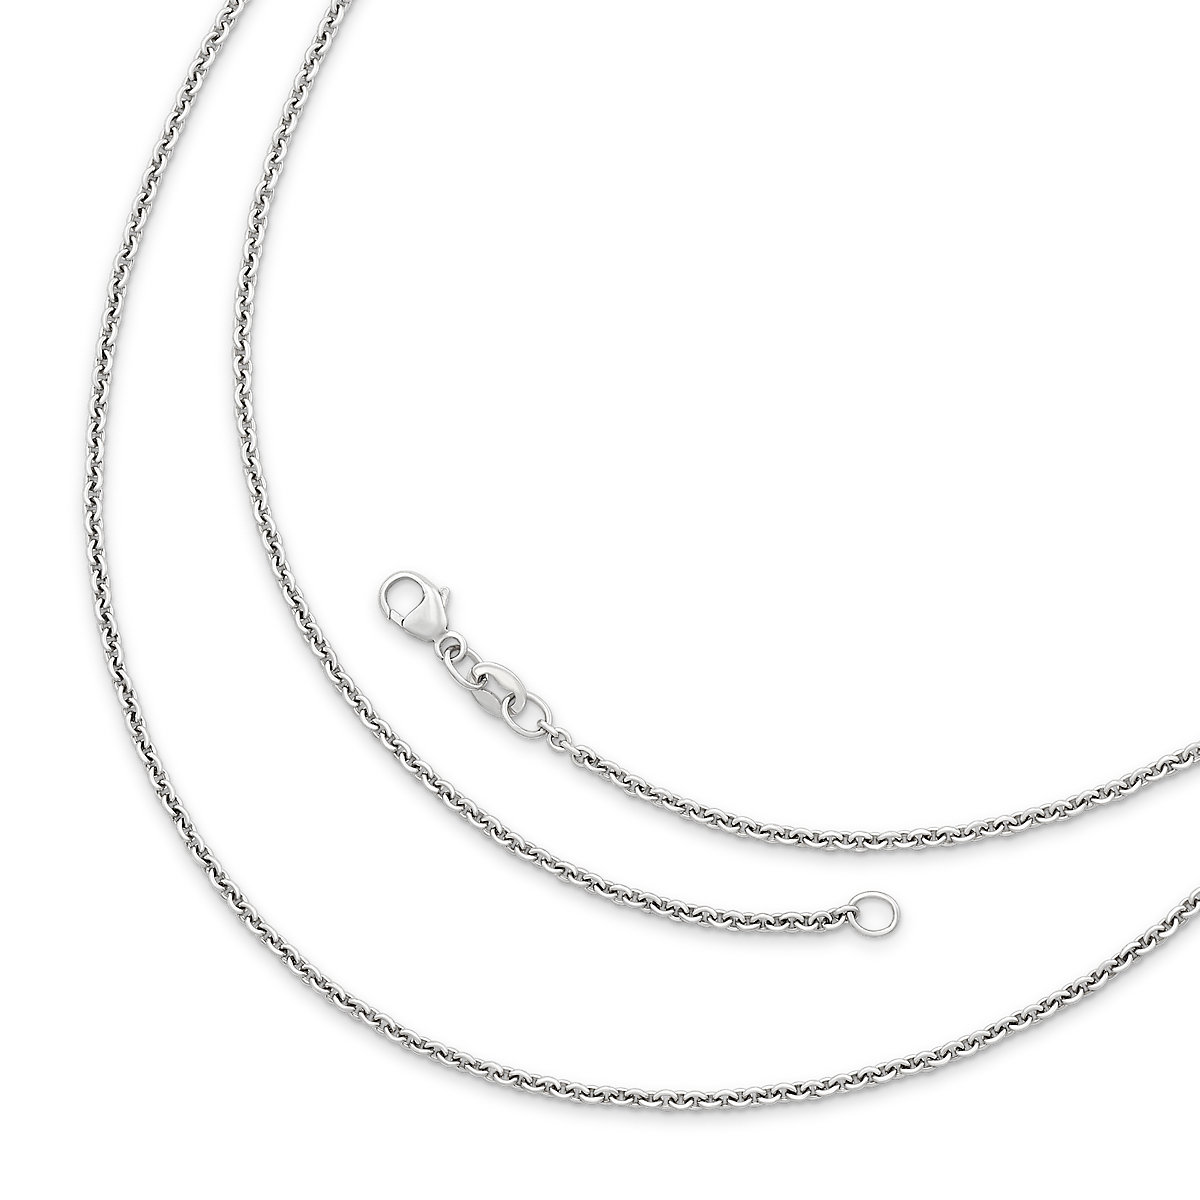 Silver necklaces pendant necklaces james avery light cable chain mozeypictures Choice Image